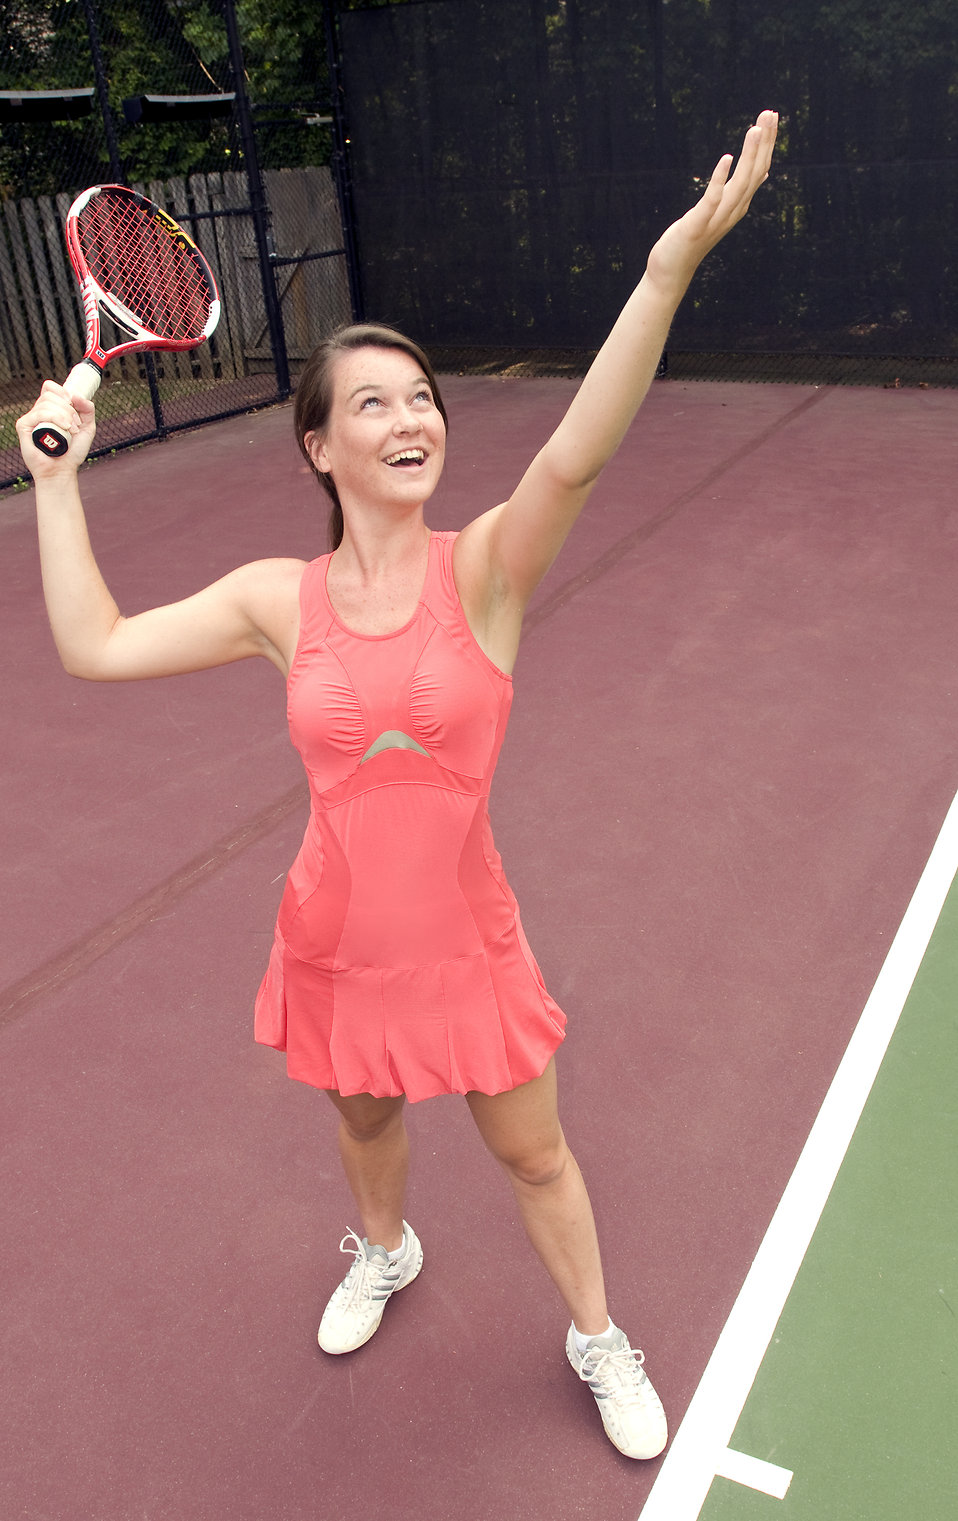 A young woman playing tennis : Free Stock Photo